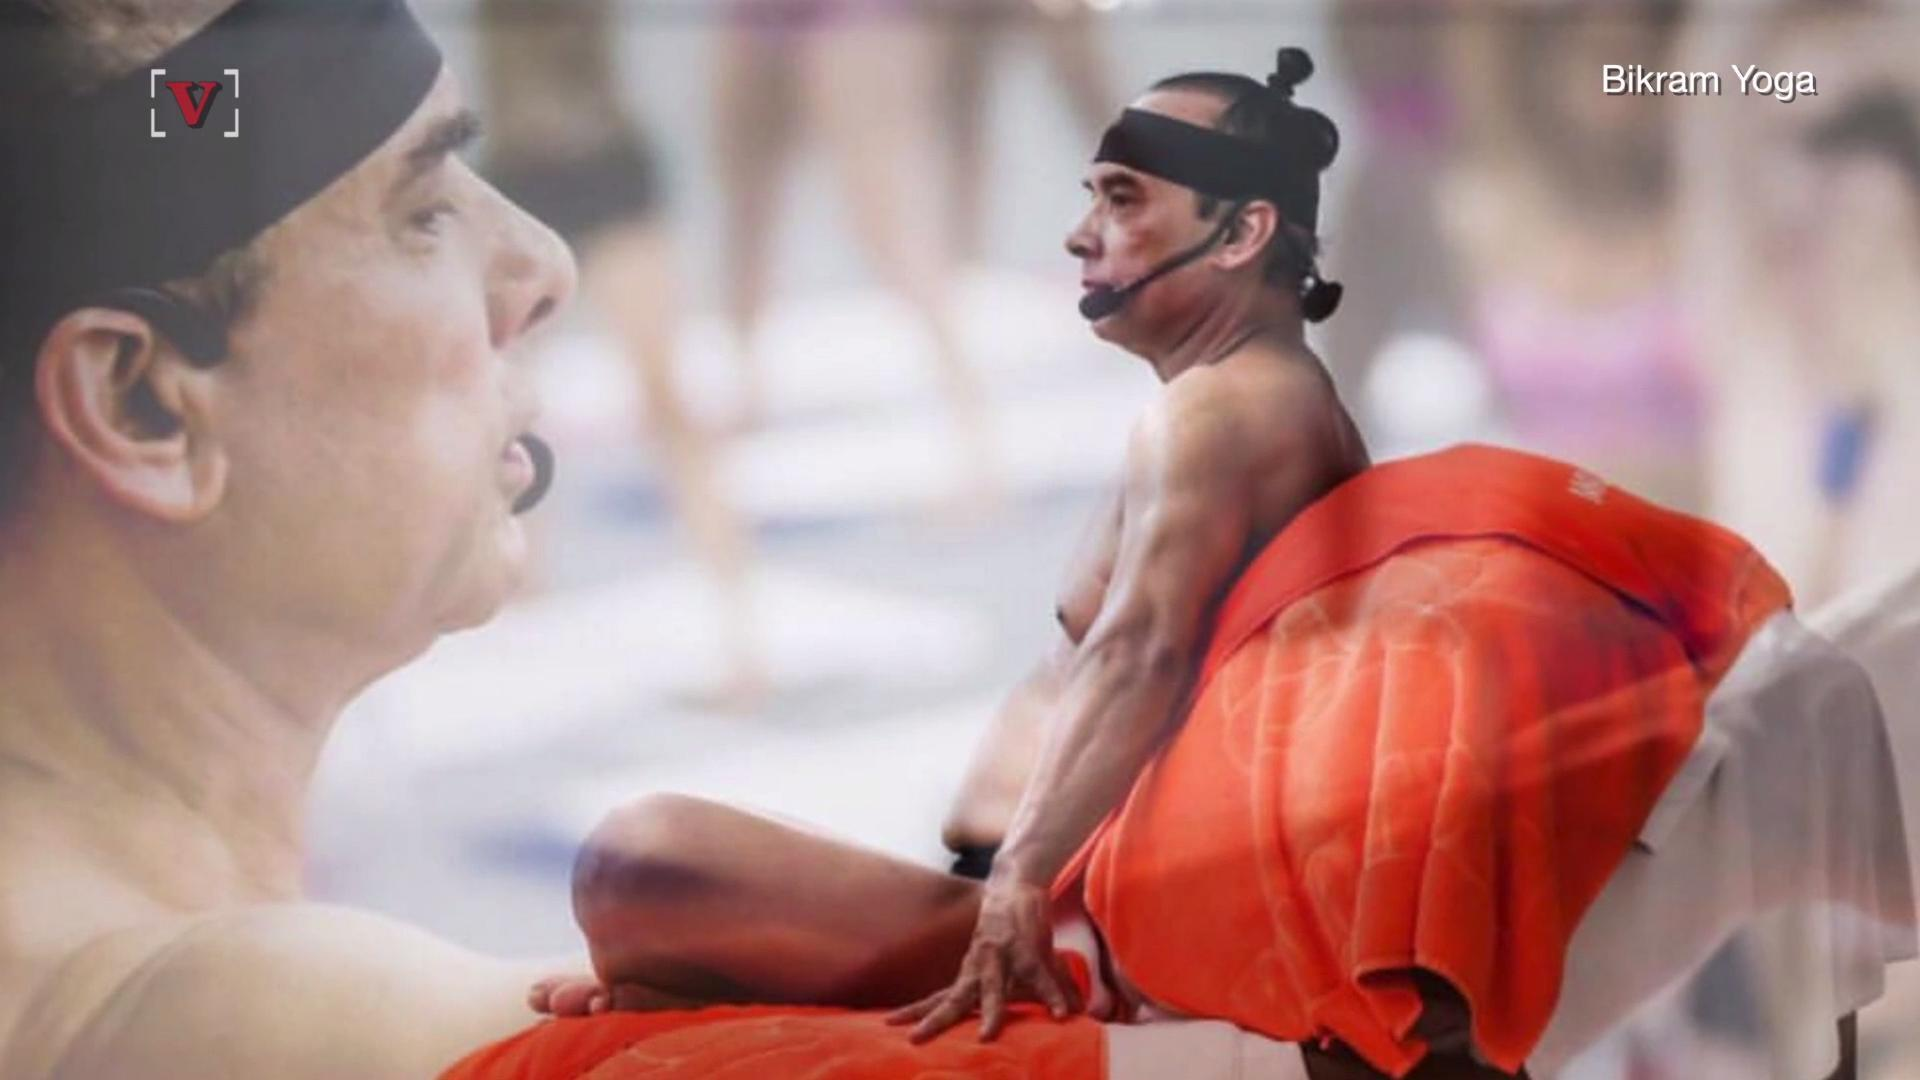 An Arrest Warrant Has Been Issued For The Bikram Yoga Founder